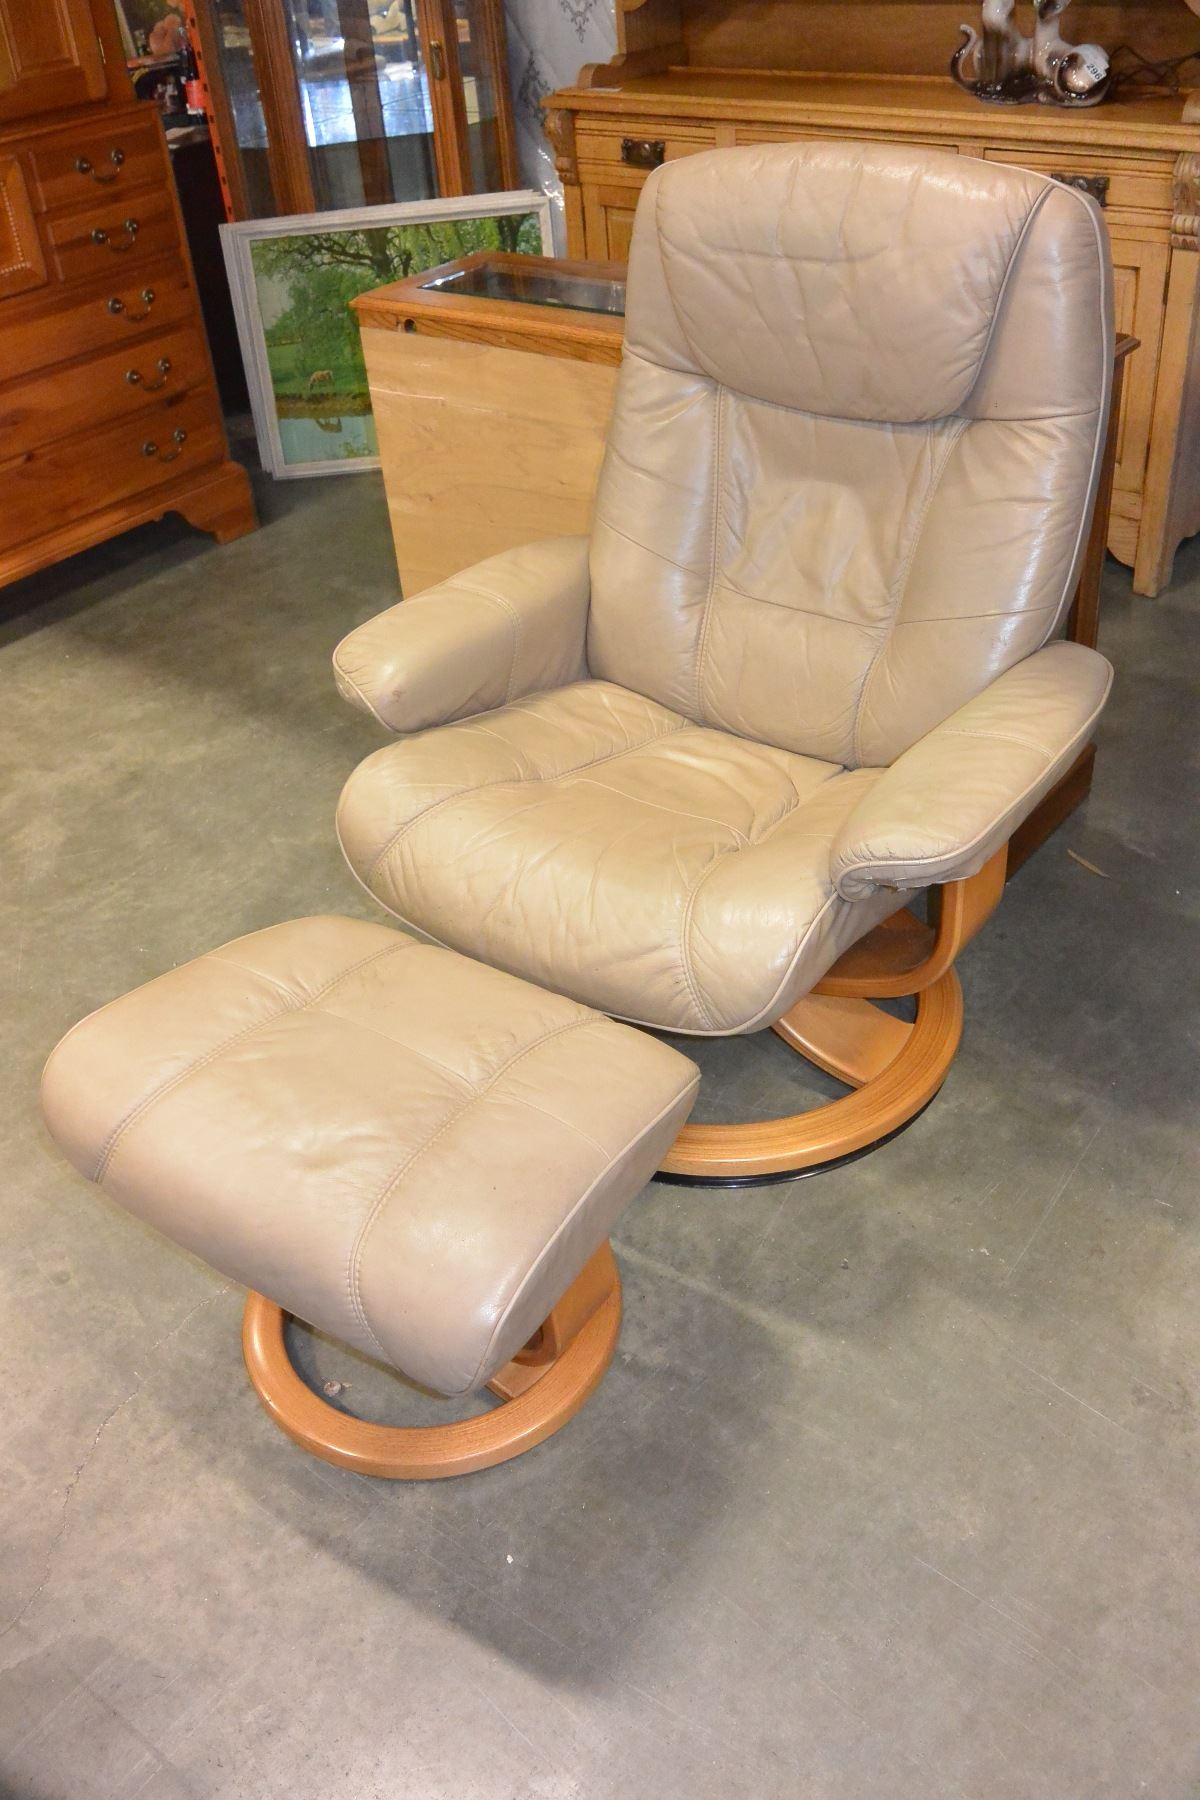 Ordinaire Image 1 : BEIGE LEATHER PALLISER RECLINER CHAIR AND OTTOMAN ...